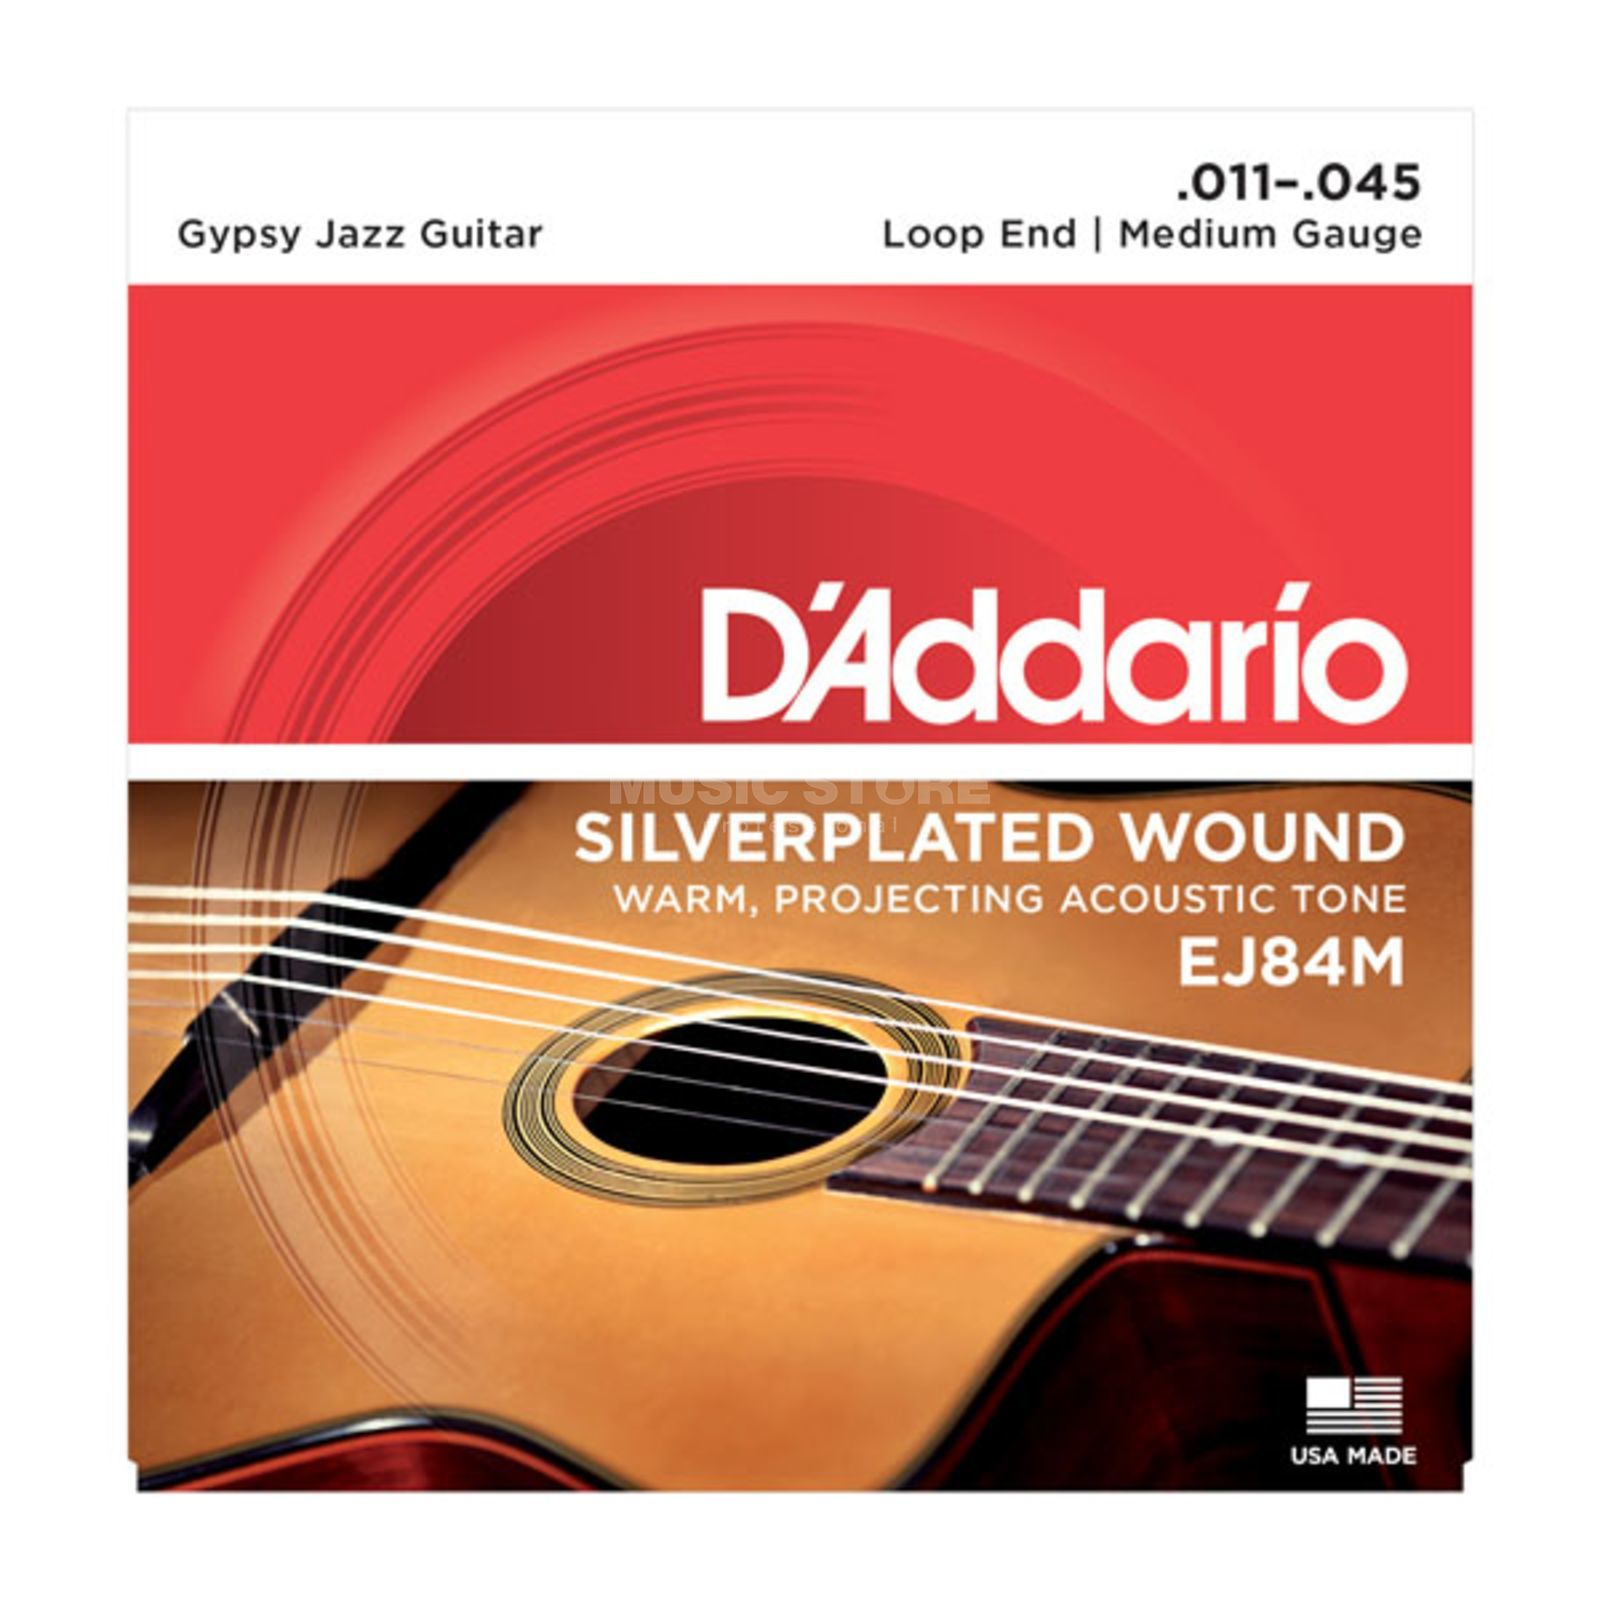 D'Addario Gypsy Jazz Saiten EJ84M 11-45 Loop End, Silverplated Wound Produktbillede